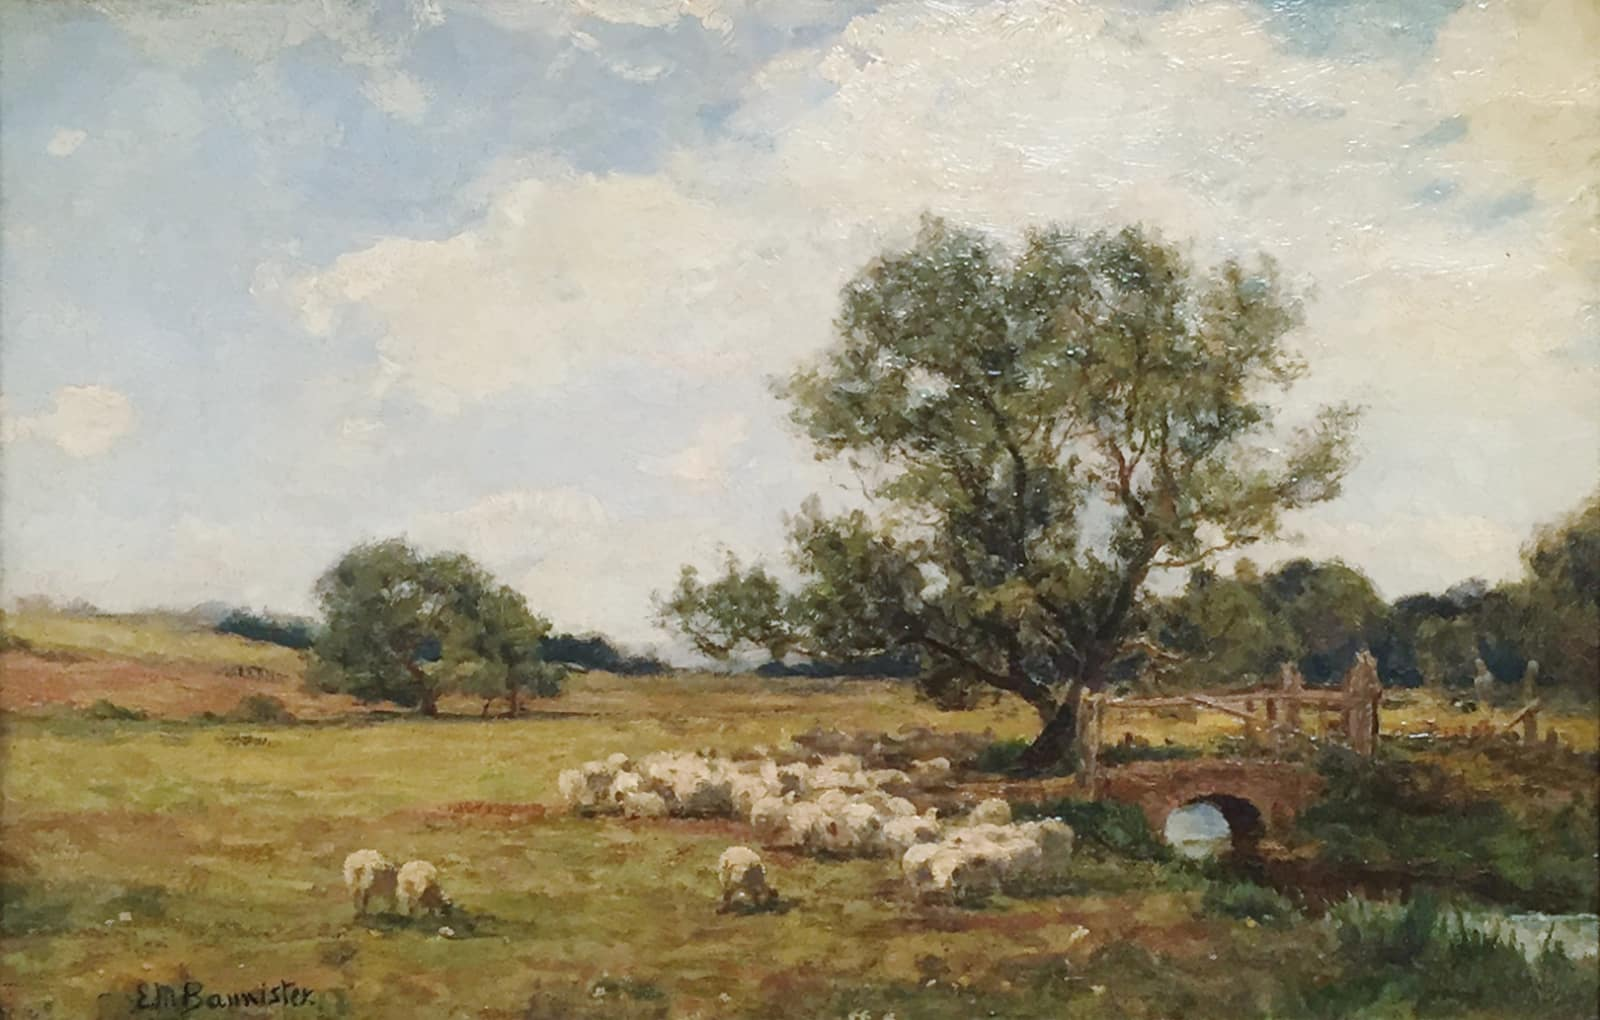 Edward Mitchell Bannister, Untitled (Sheep in a Field), 1883